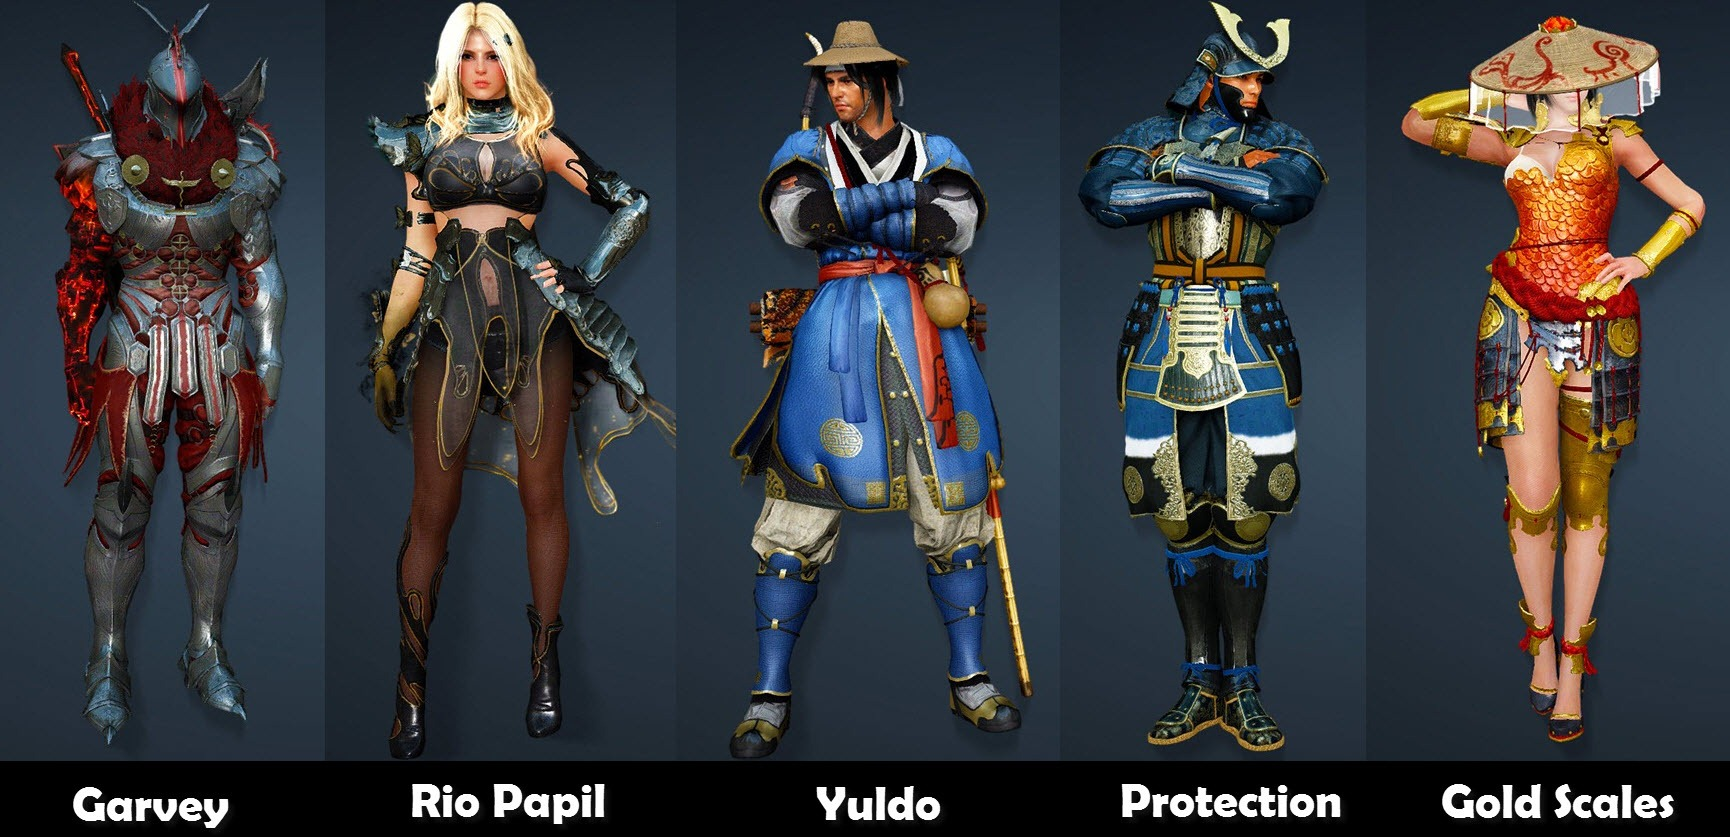 bdo-march-31-korean-costumes